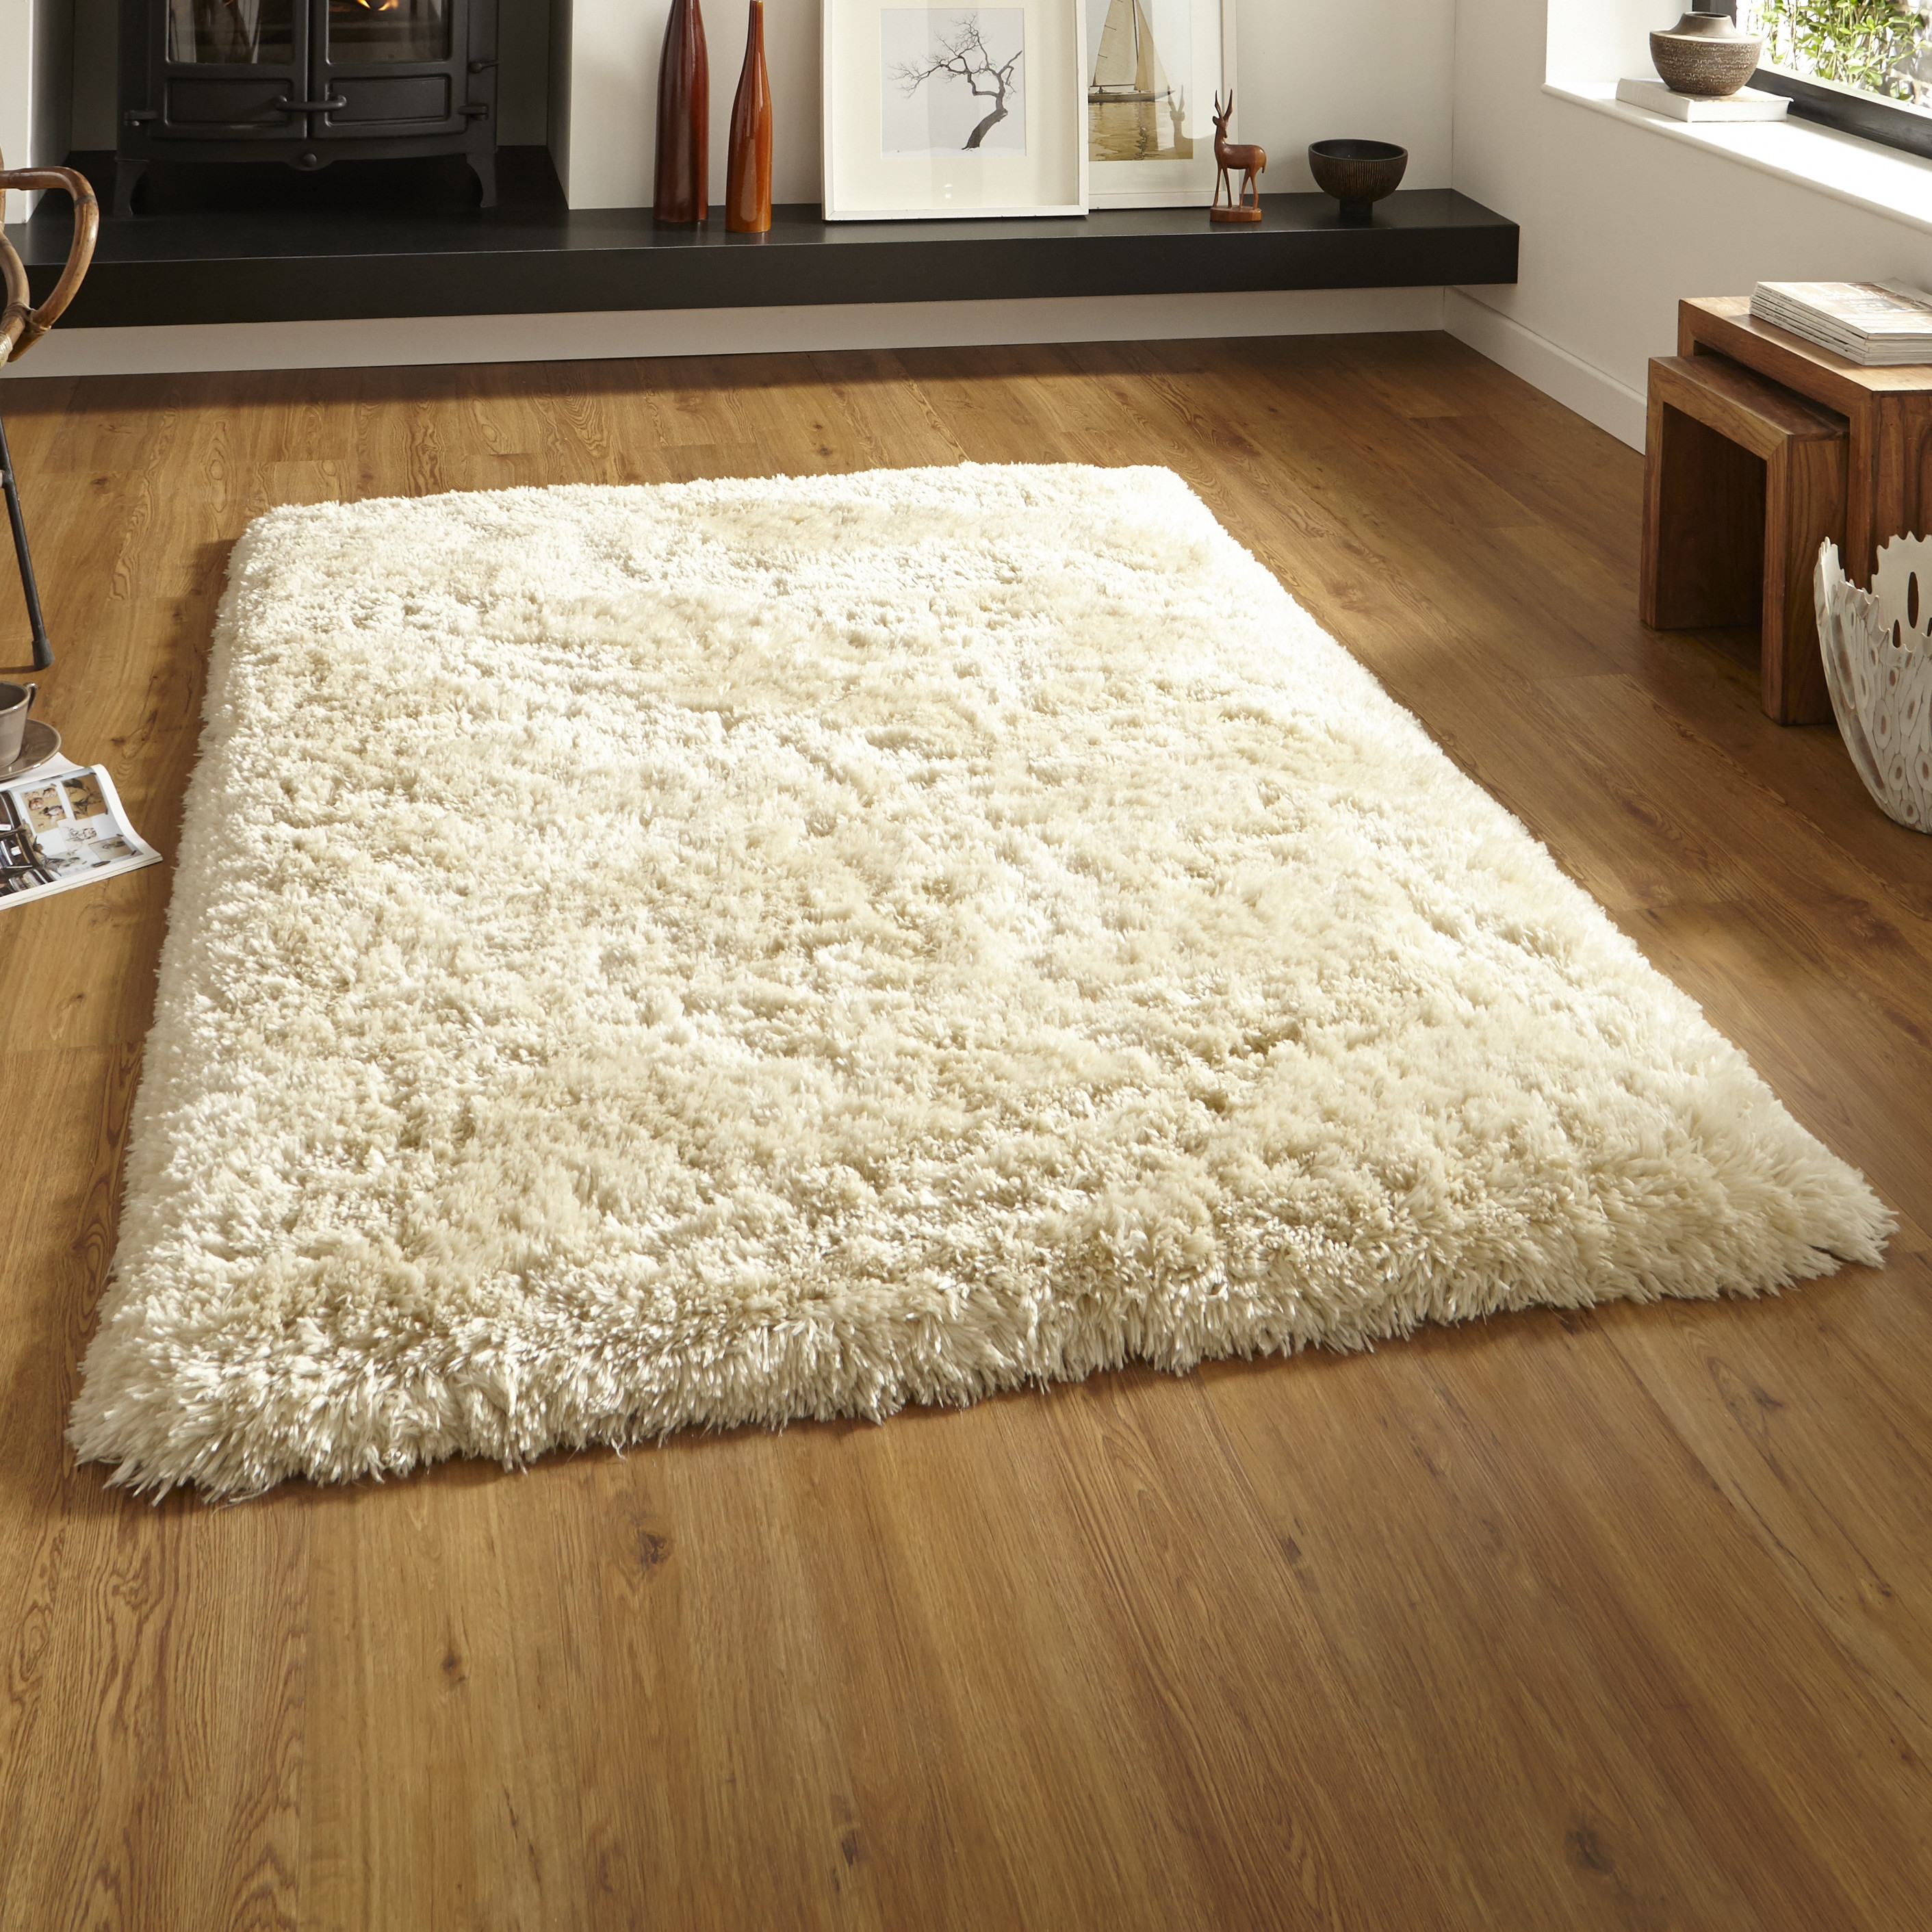 Cream Rugs Uk Roselawnlutheran With Cream Rugs (Image 10 of 15)